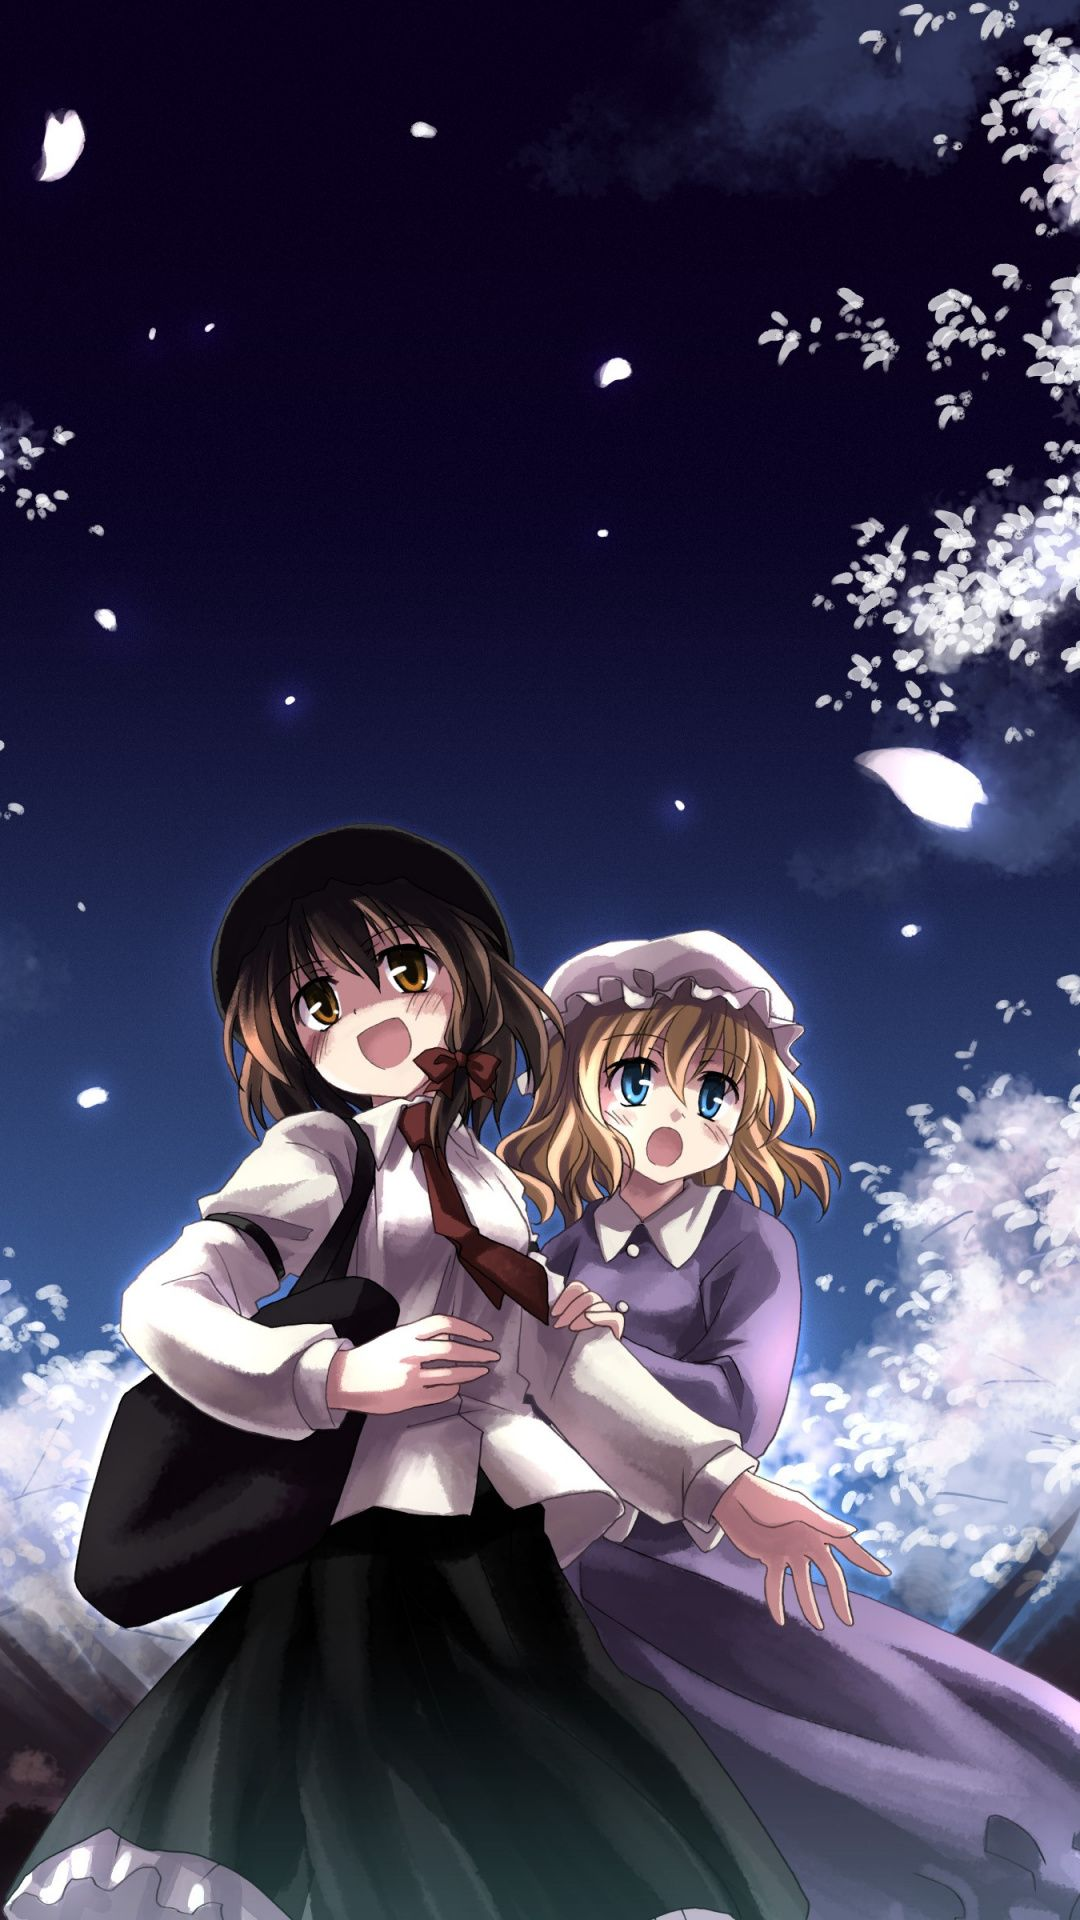 Wallpapers graphics, rin, sky, anime, darkness Anime